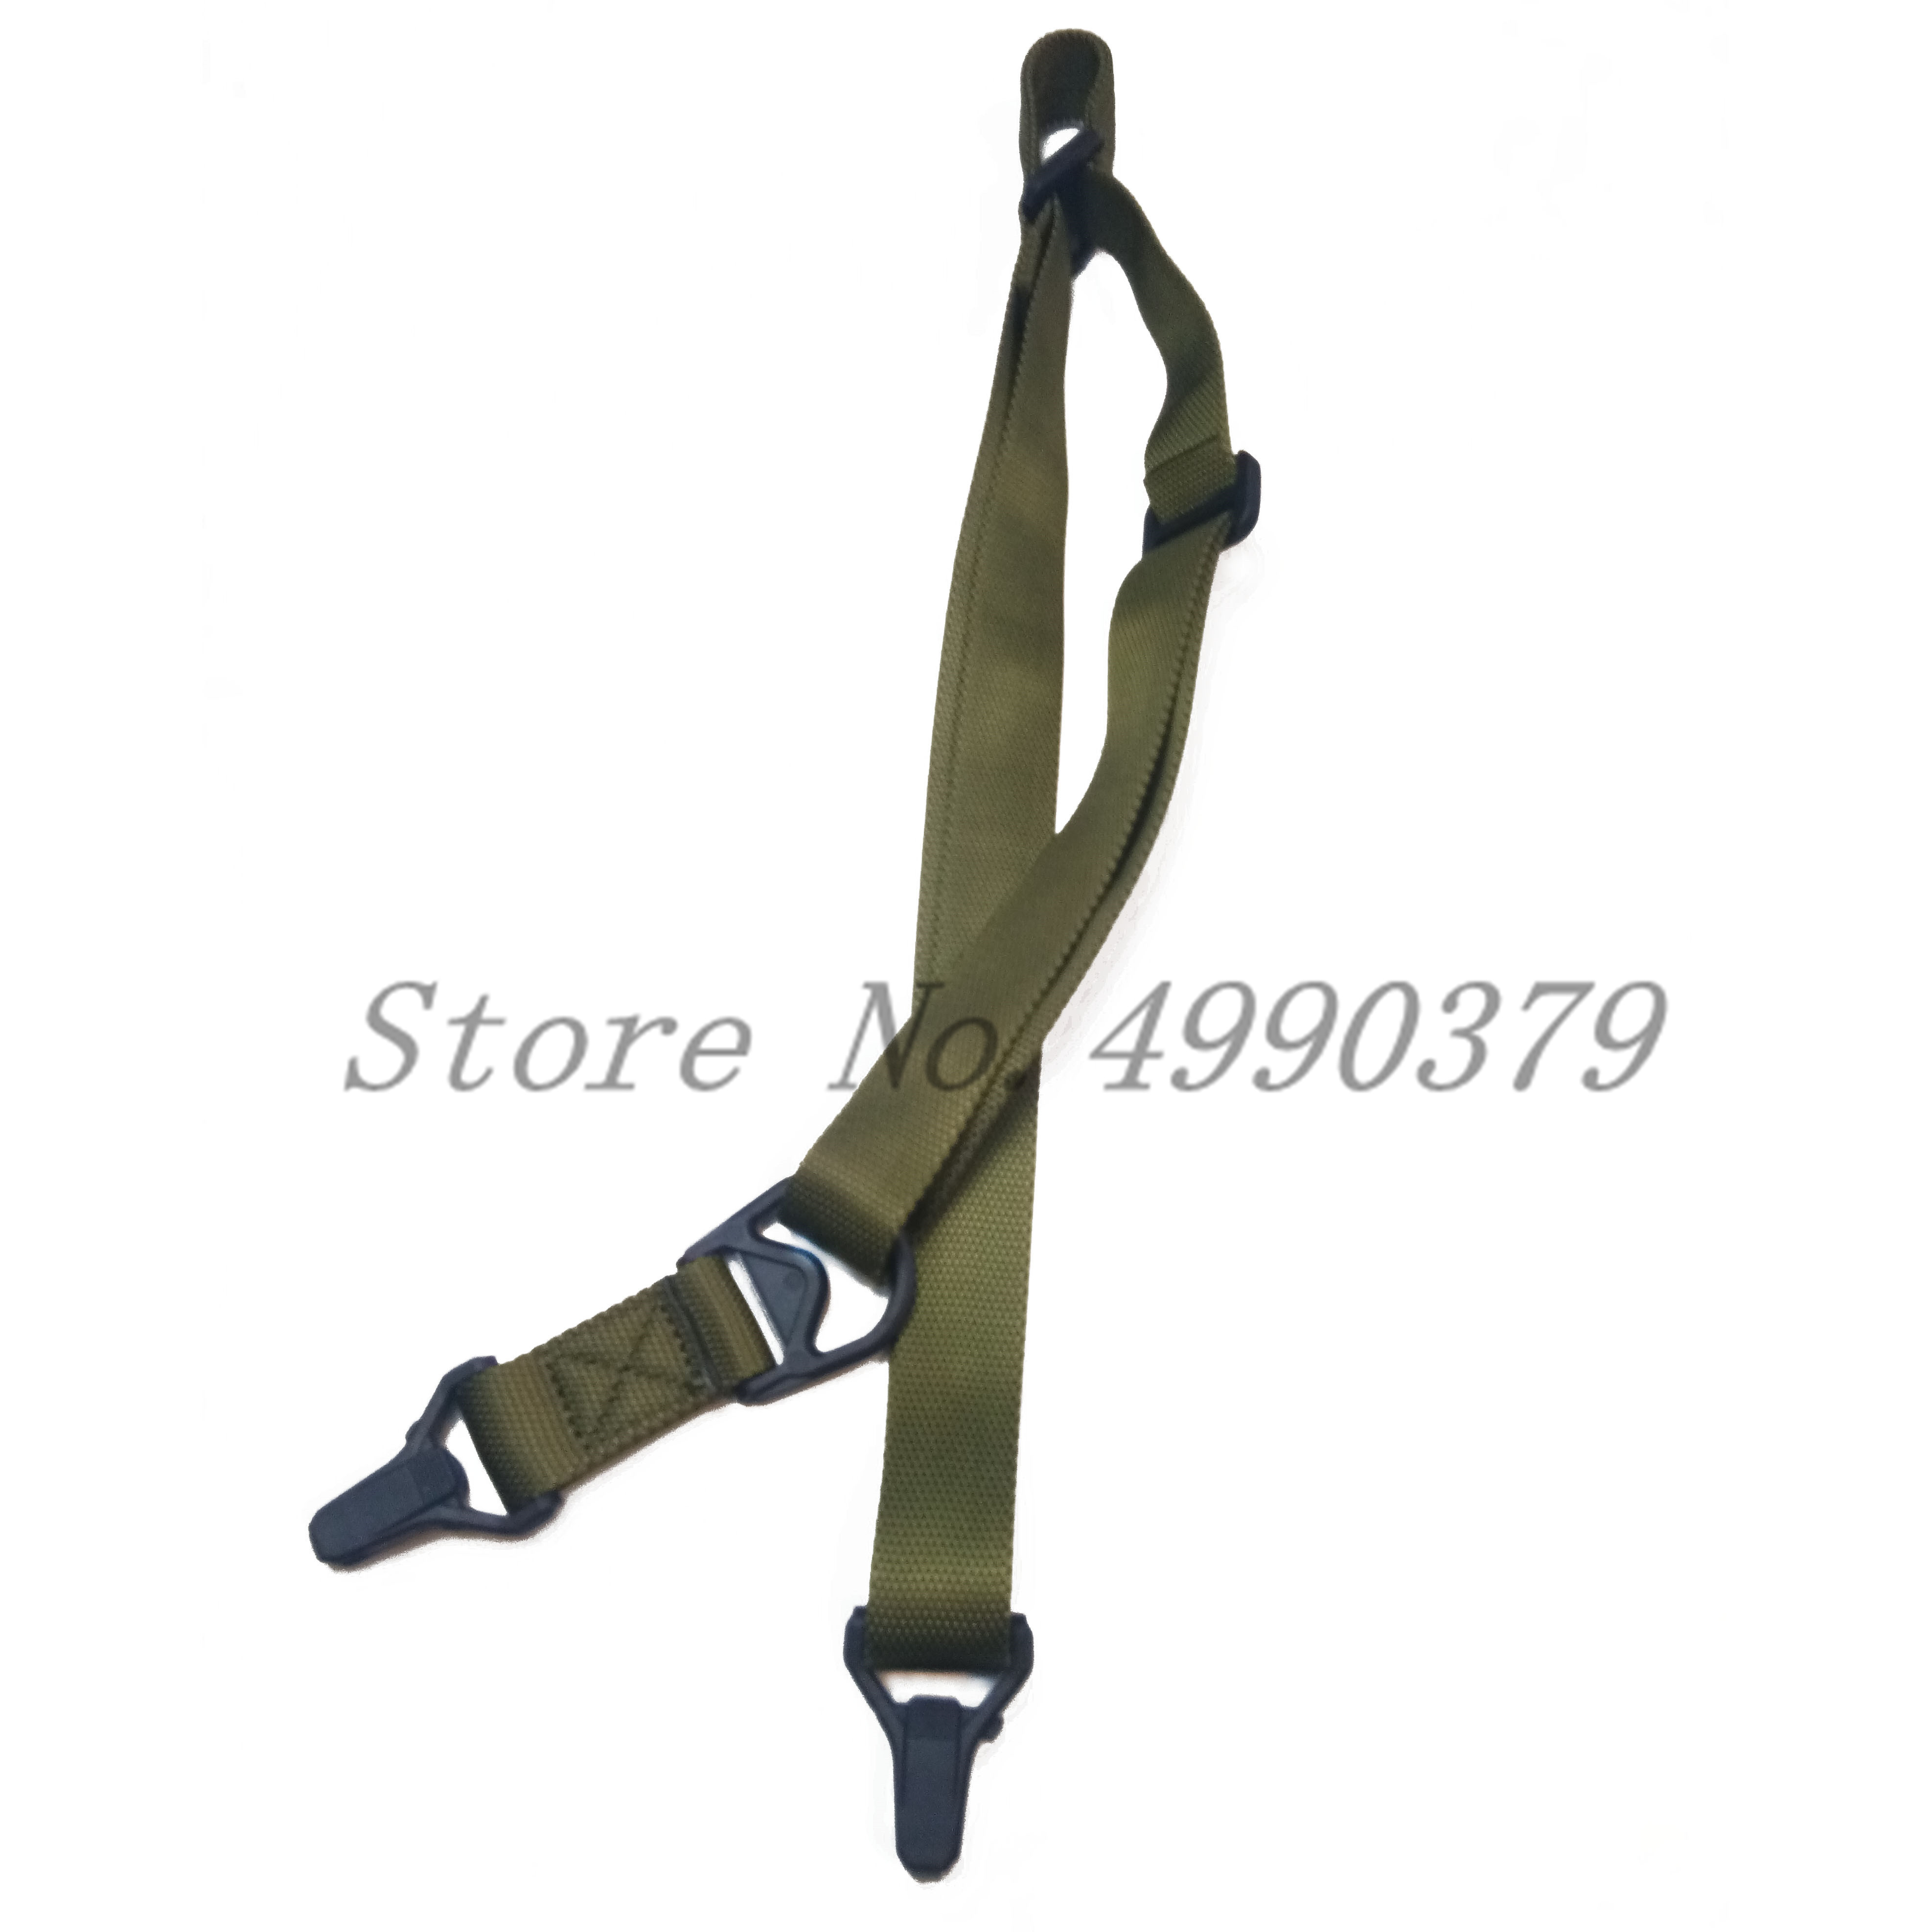 Image 3 - HANWILD  MS3 Tactical Sling Multi Mission Rifles Carry Sling Adjustable Length Shoulder Straps Wholesale-in Hunting Gun Accessories from Sports & Entertainment